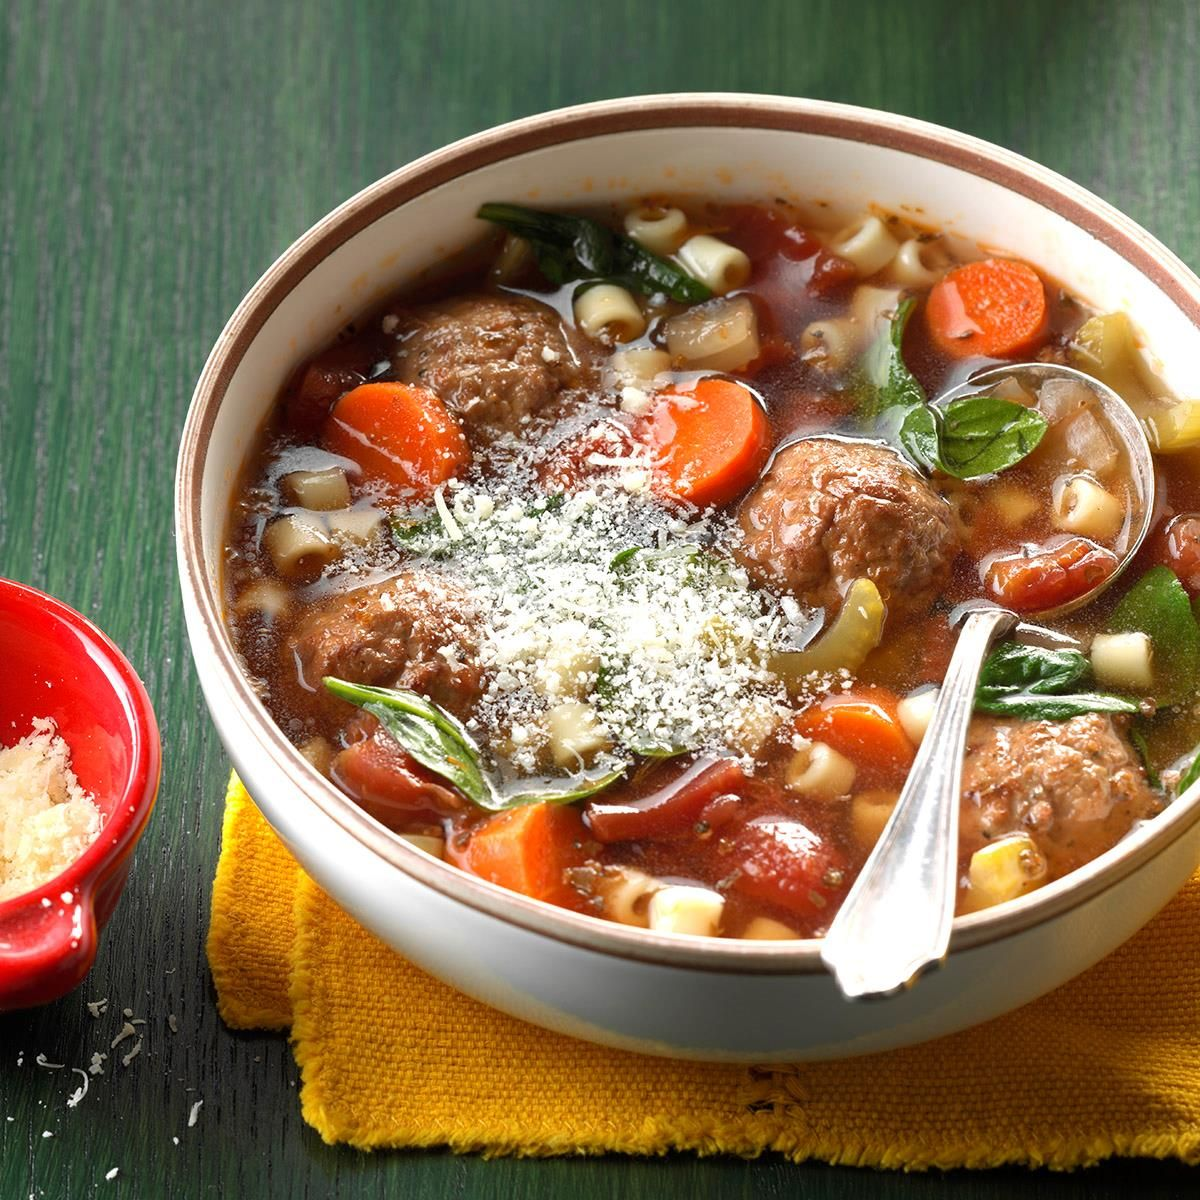 Cooking soup with meatballs and pasta